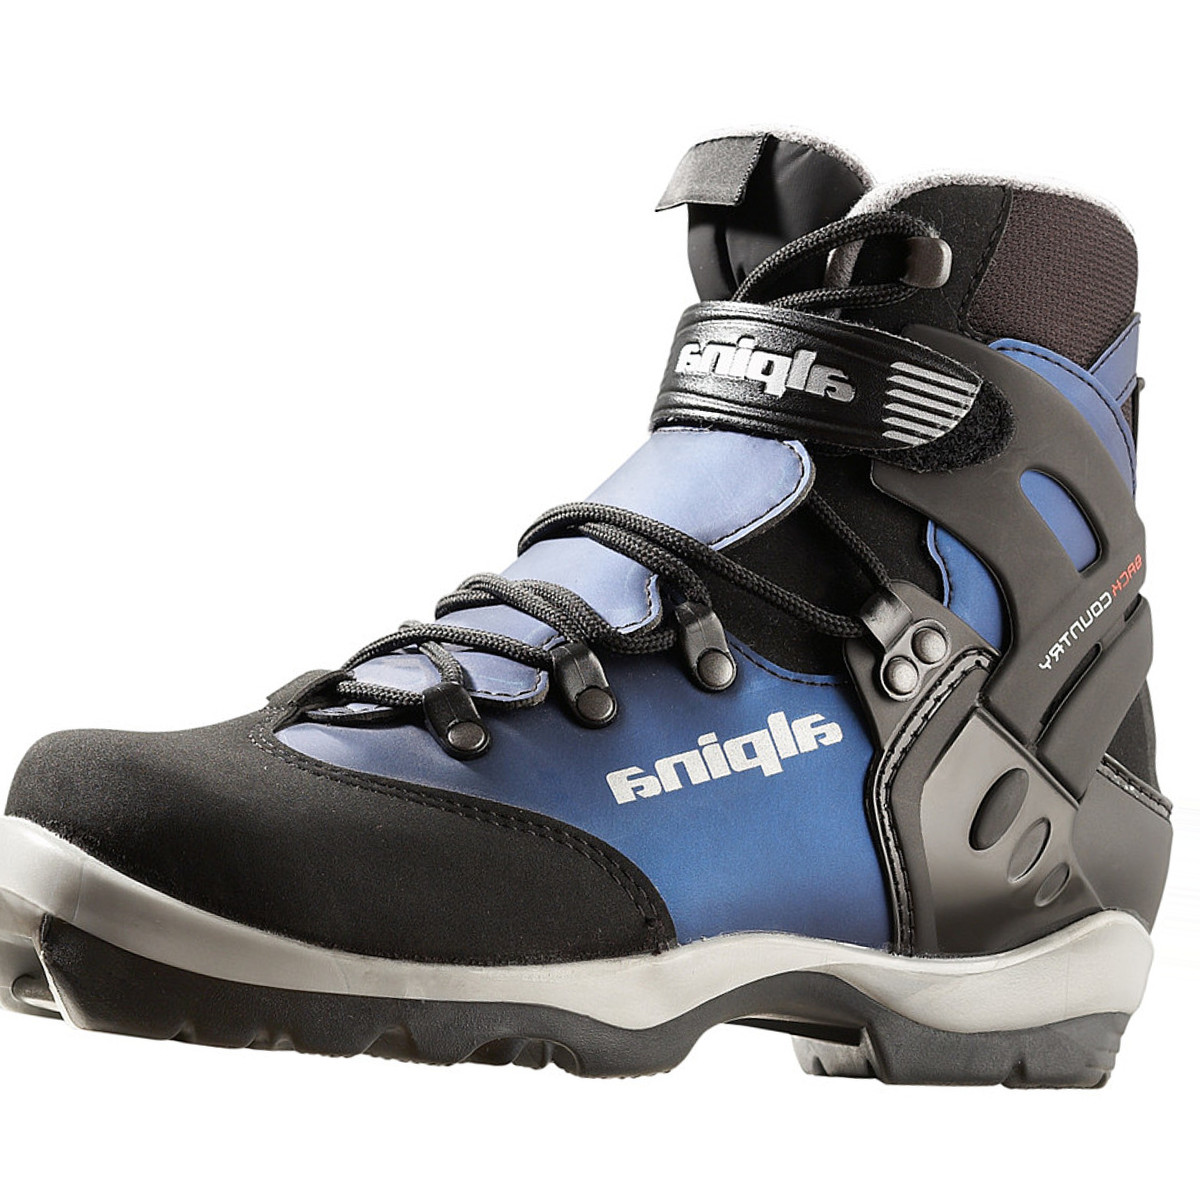 Alpina BC 1550 Cross Country Backcountry Boot - Women's